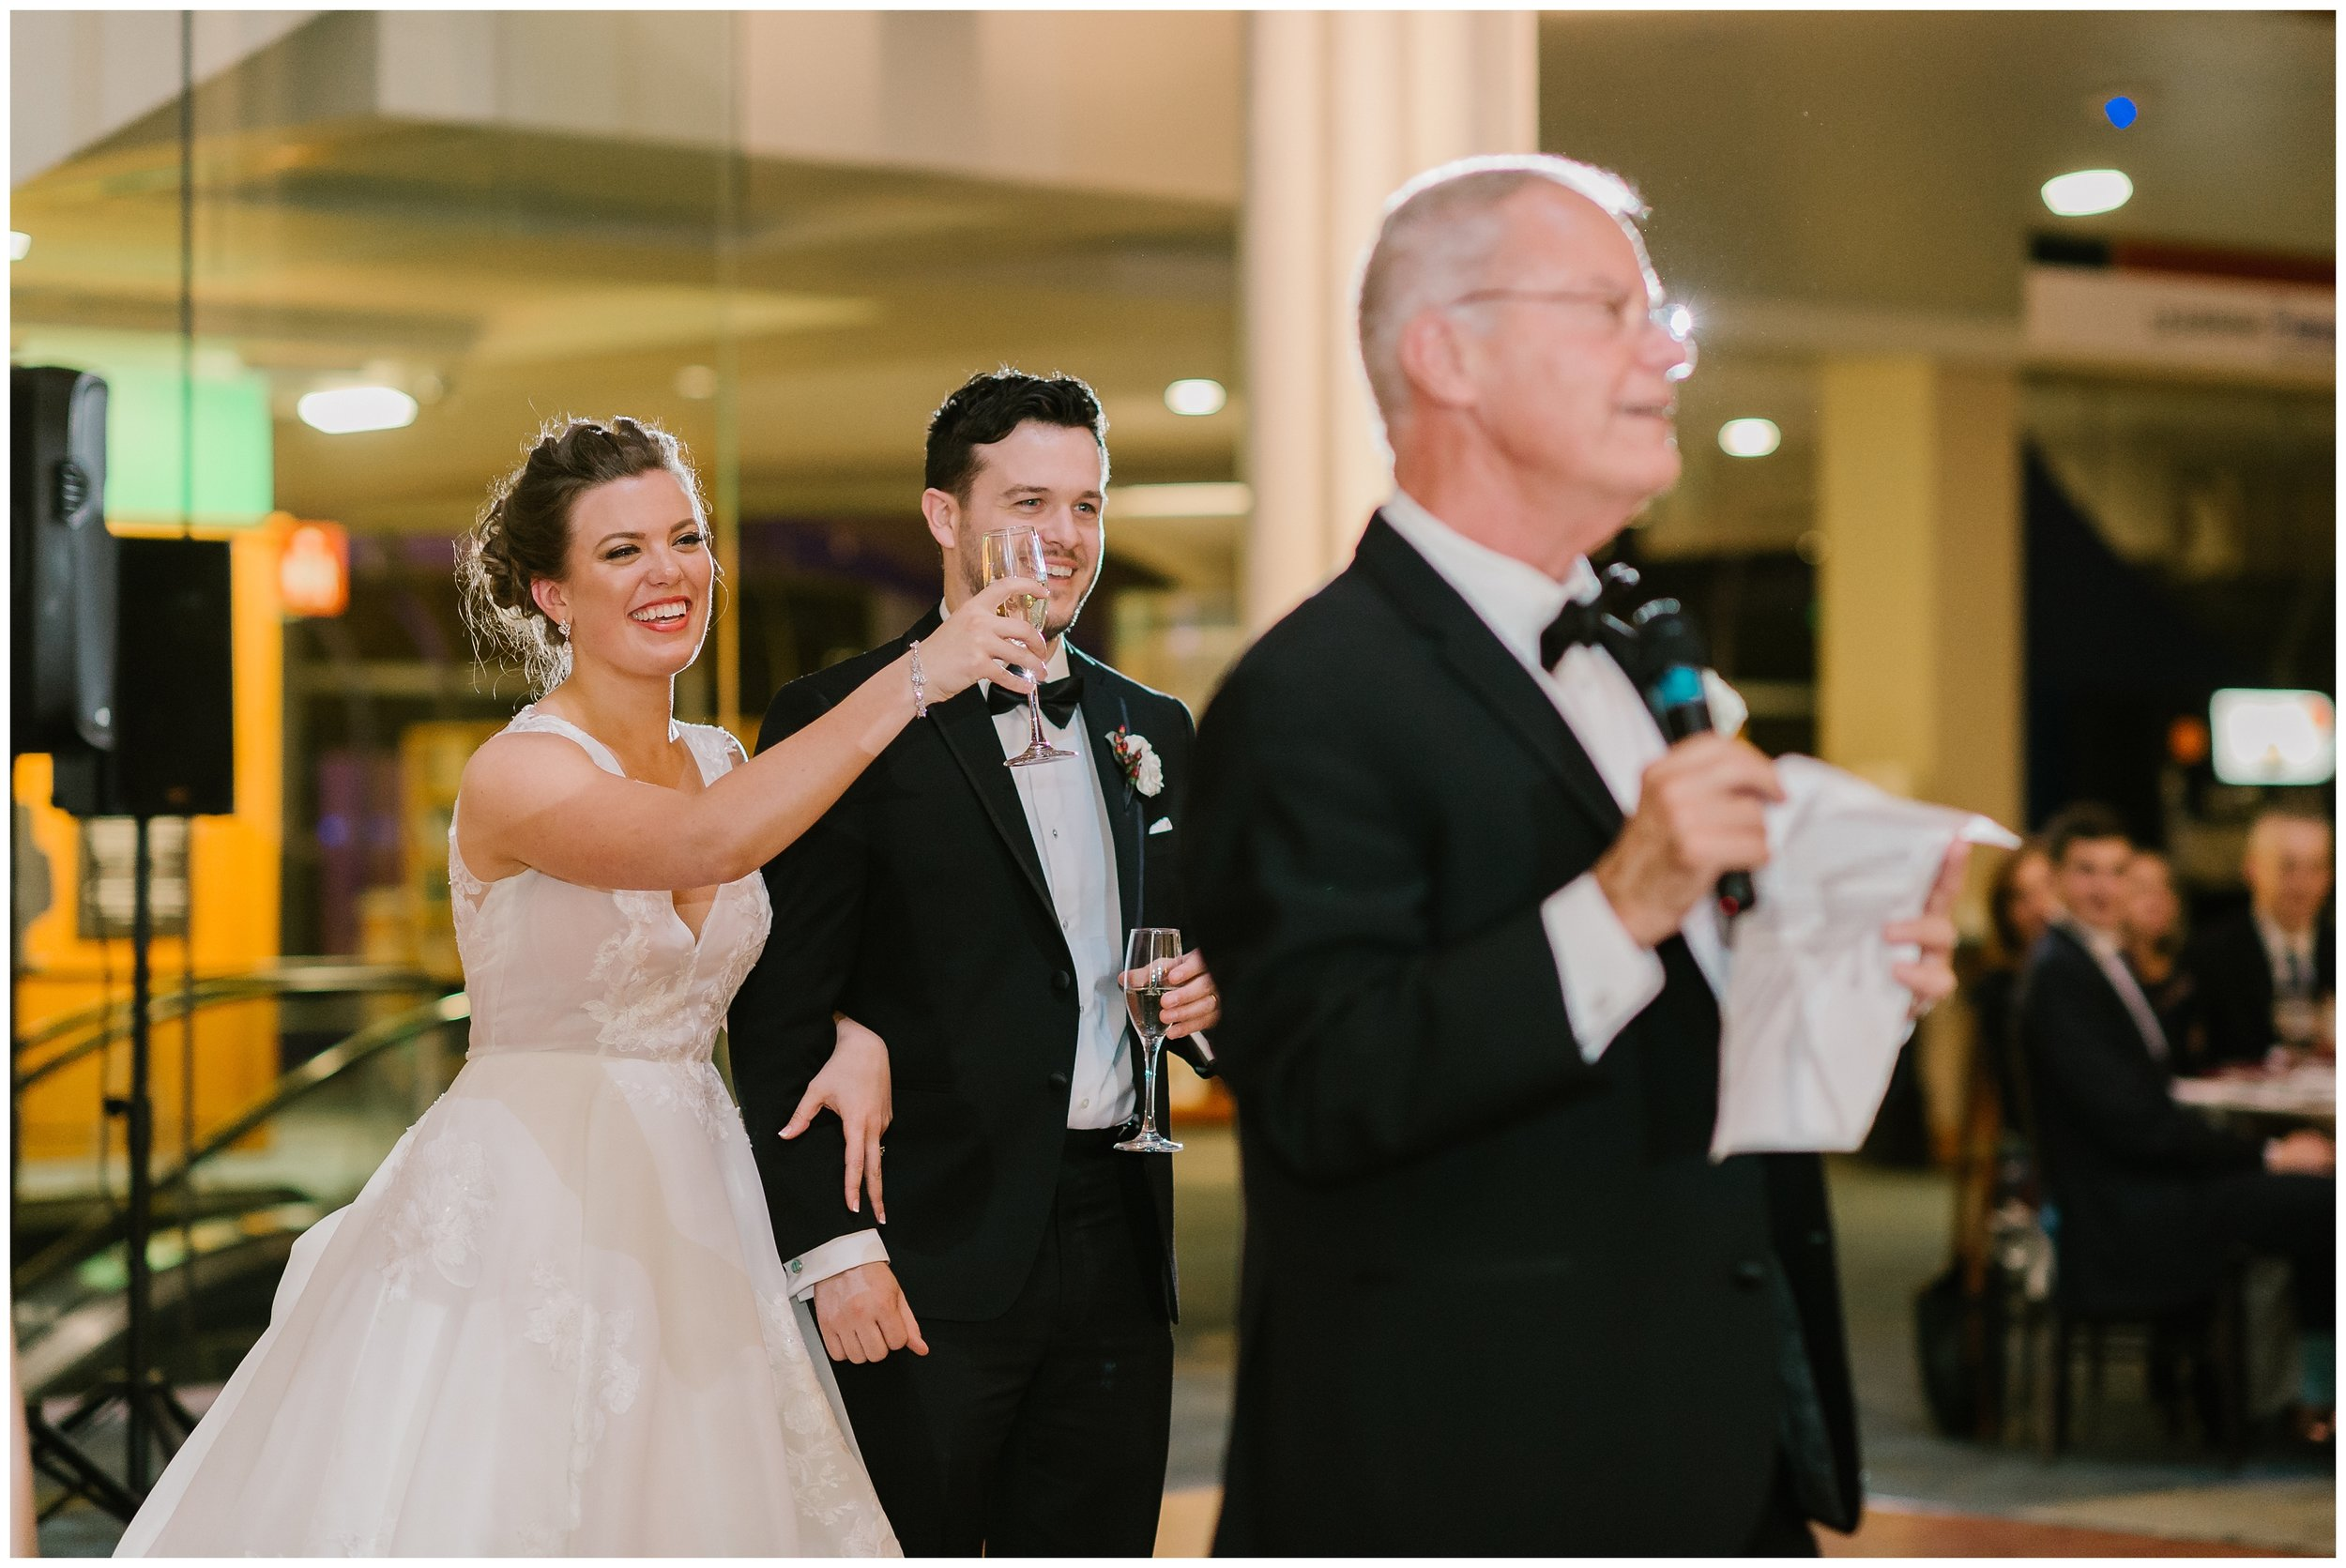 Rebecca_Shehorn_Photography_Indianapolis_Wedding_Photographer_7776.jpg